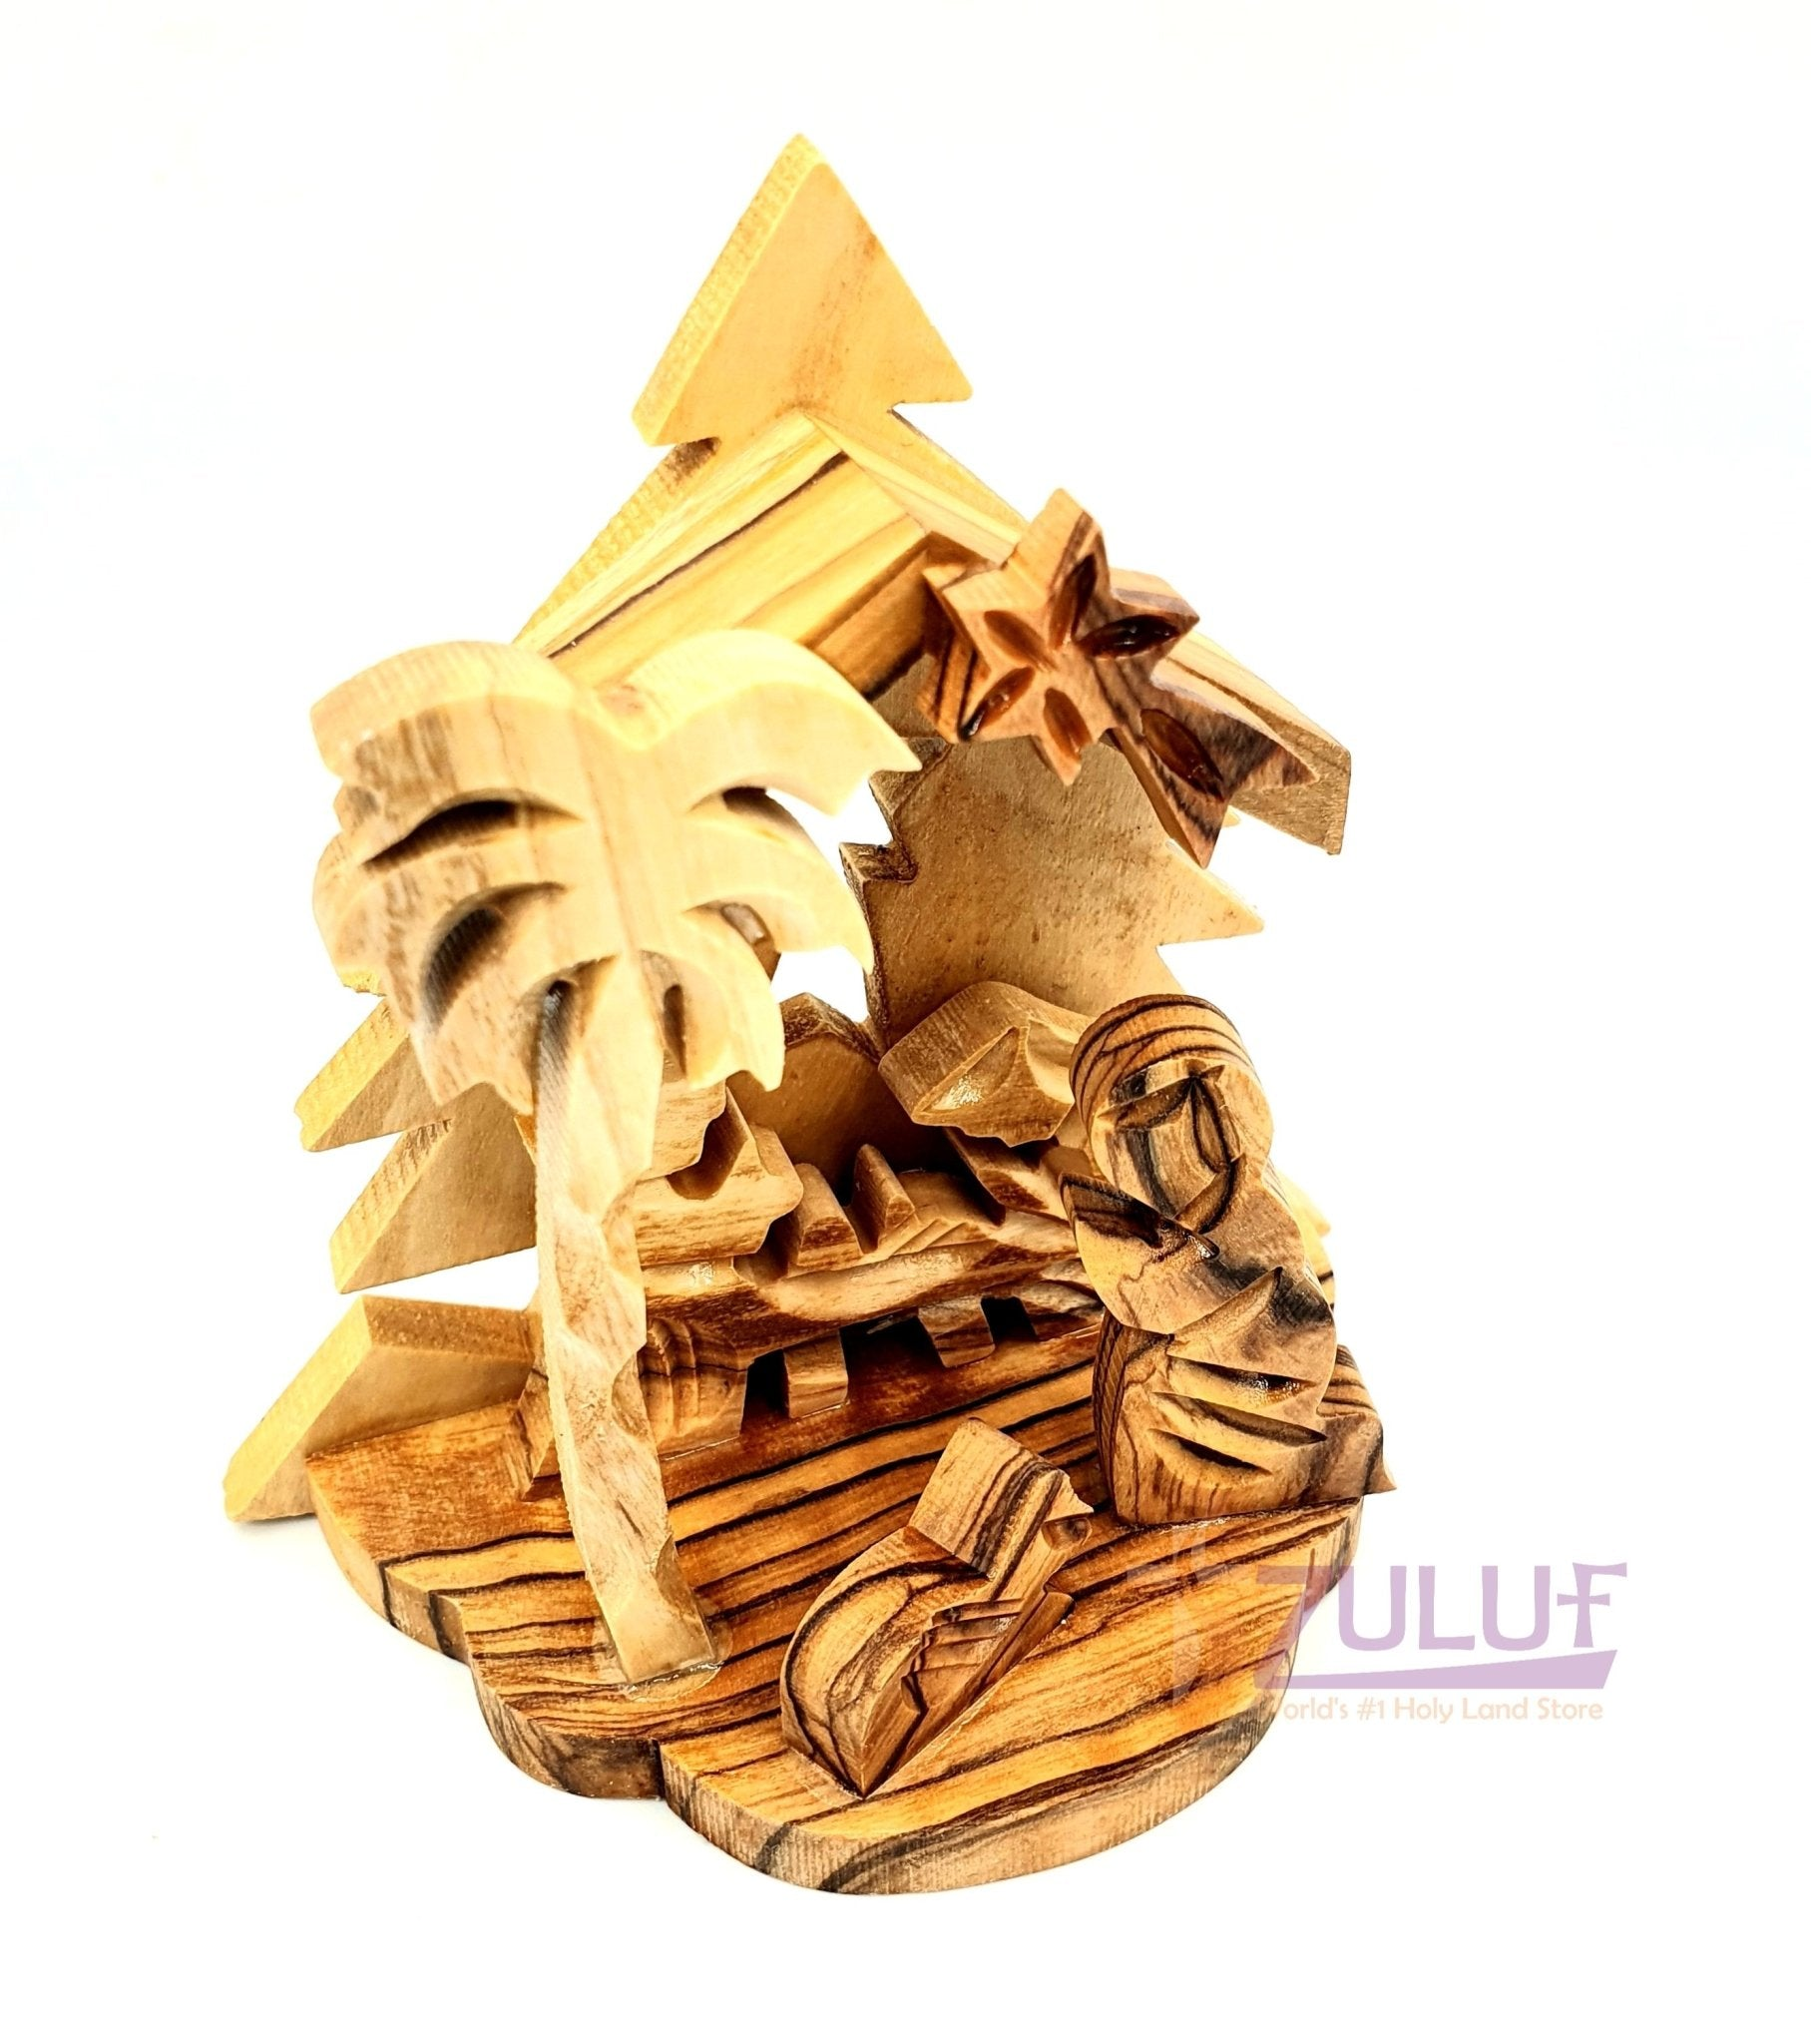 bethlehem star olive wood nativity Israel Holy Land NAT068 - Zuluf